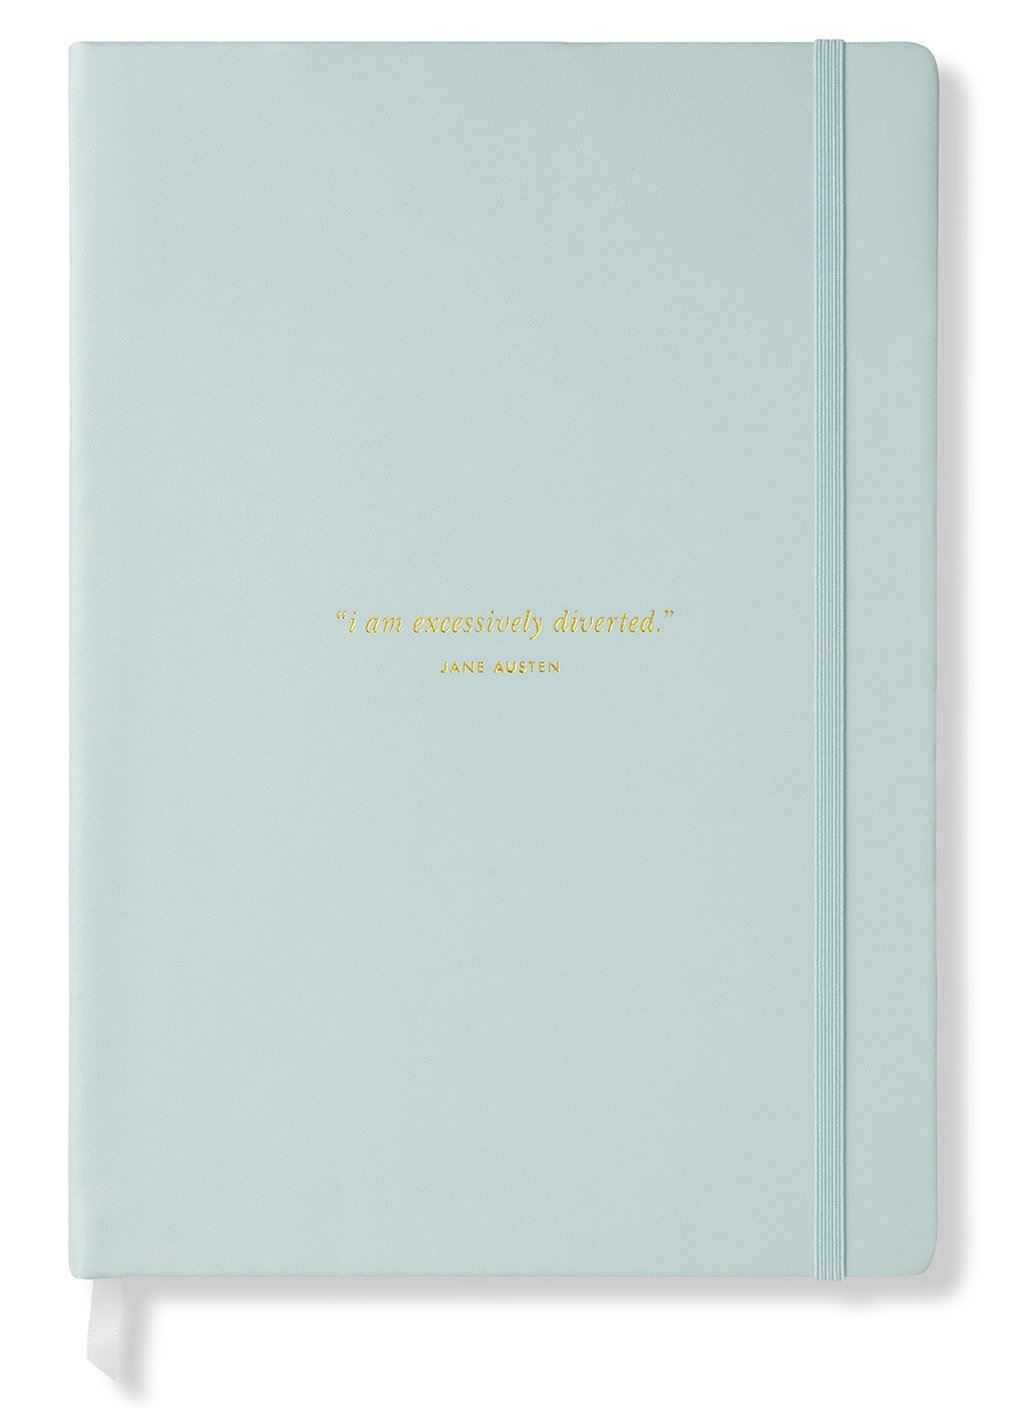 Kate Spade New York Take Note Notebook XLarge, Excessively Diverted by Kate Spade New York